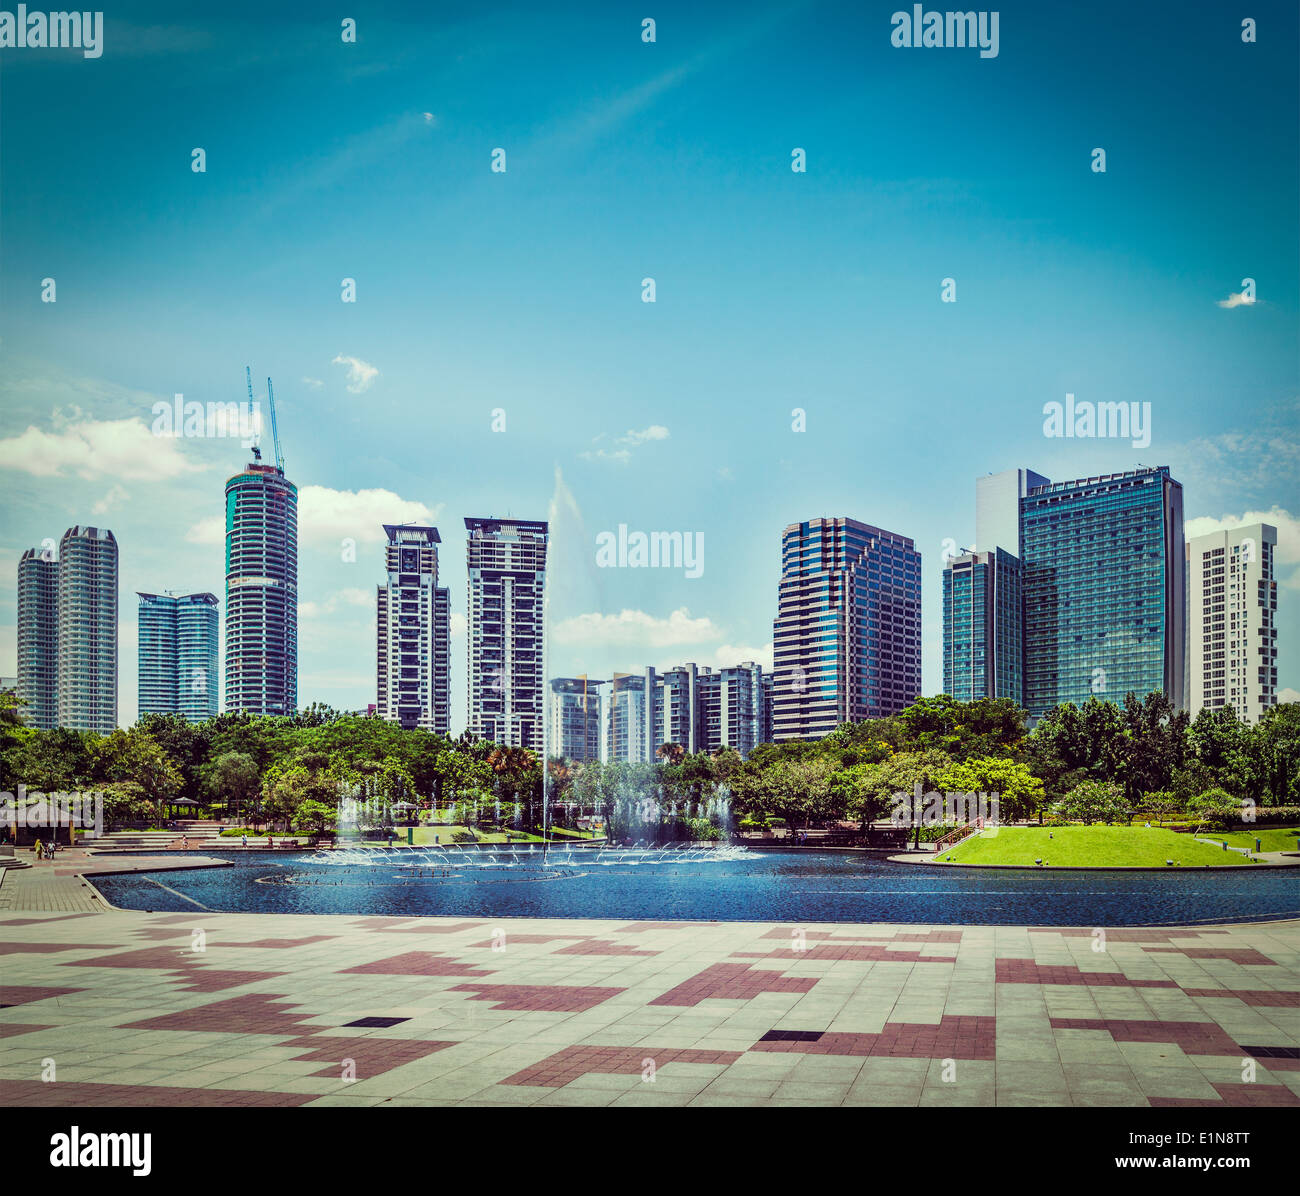 Vintage retro hipster style travel image of skyline of Central Business District of Kuala Lumpur, Malaysia - Stock Image